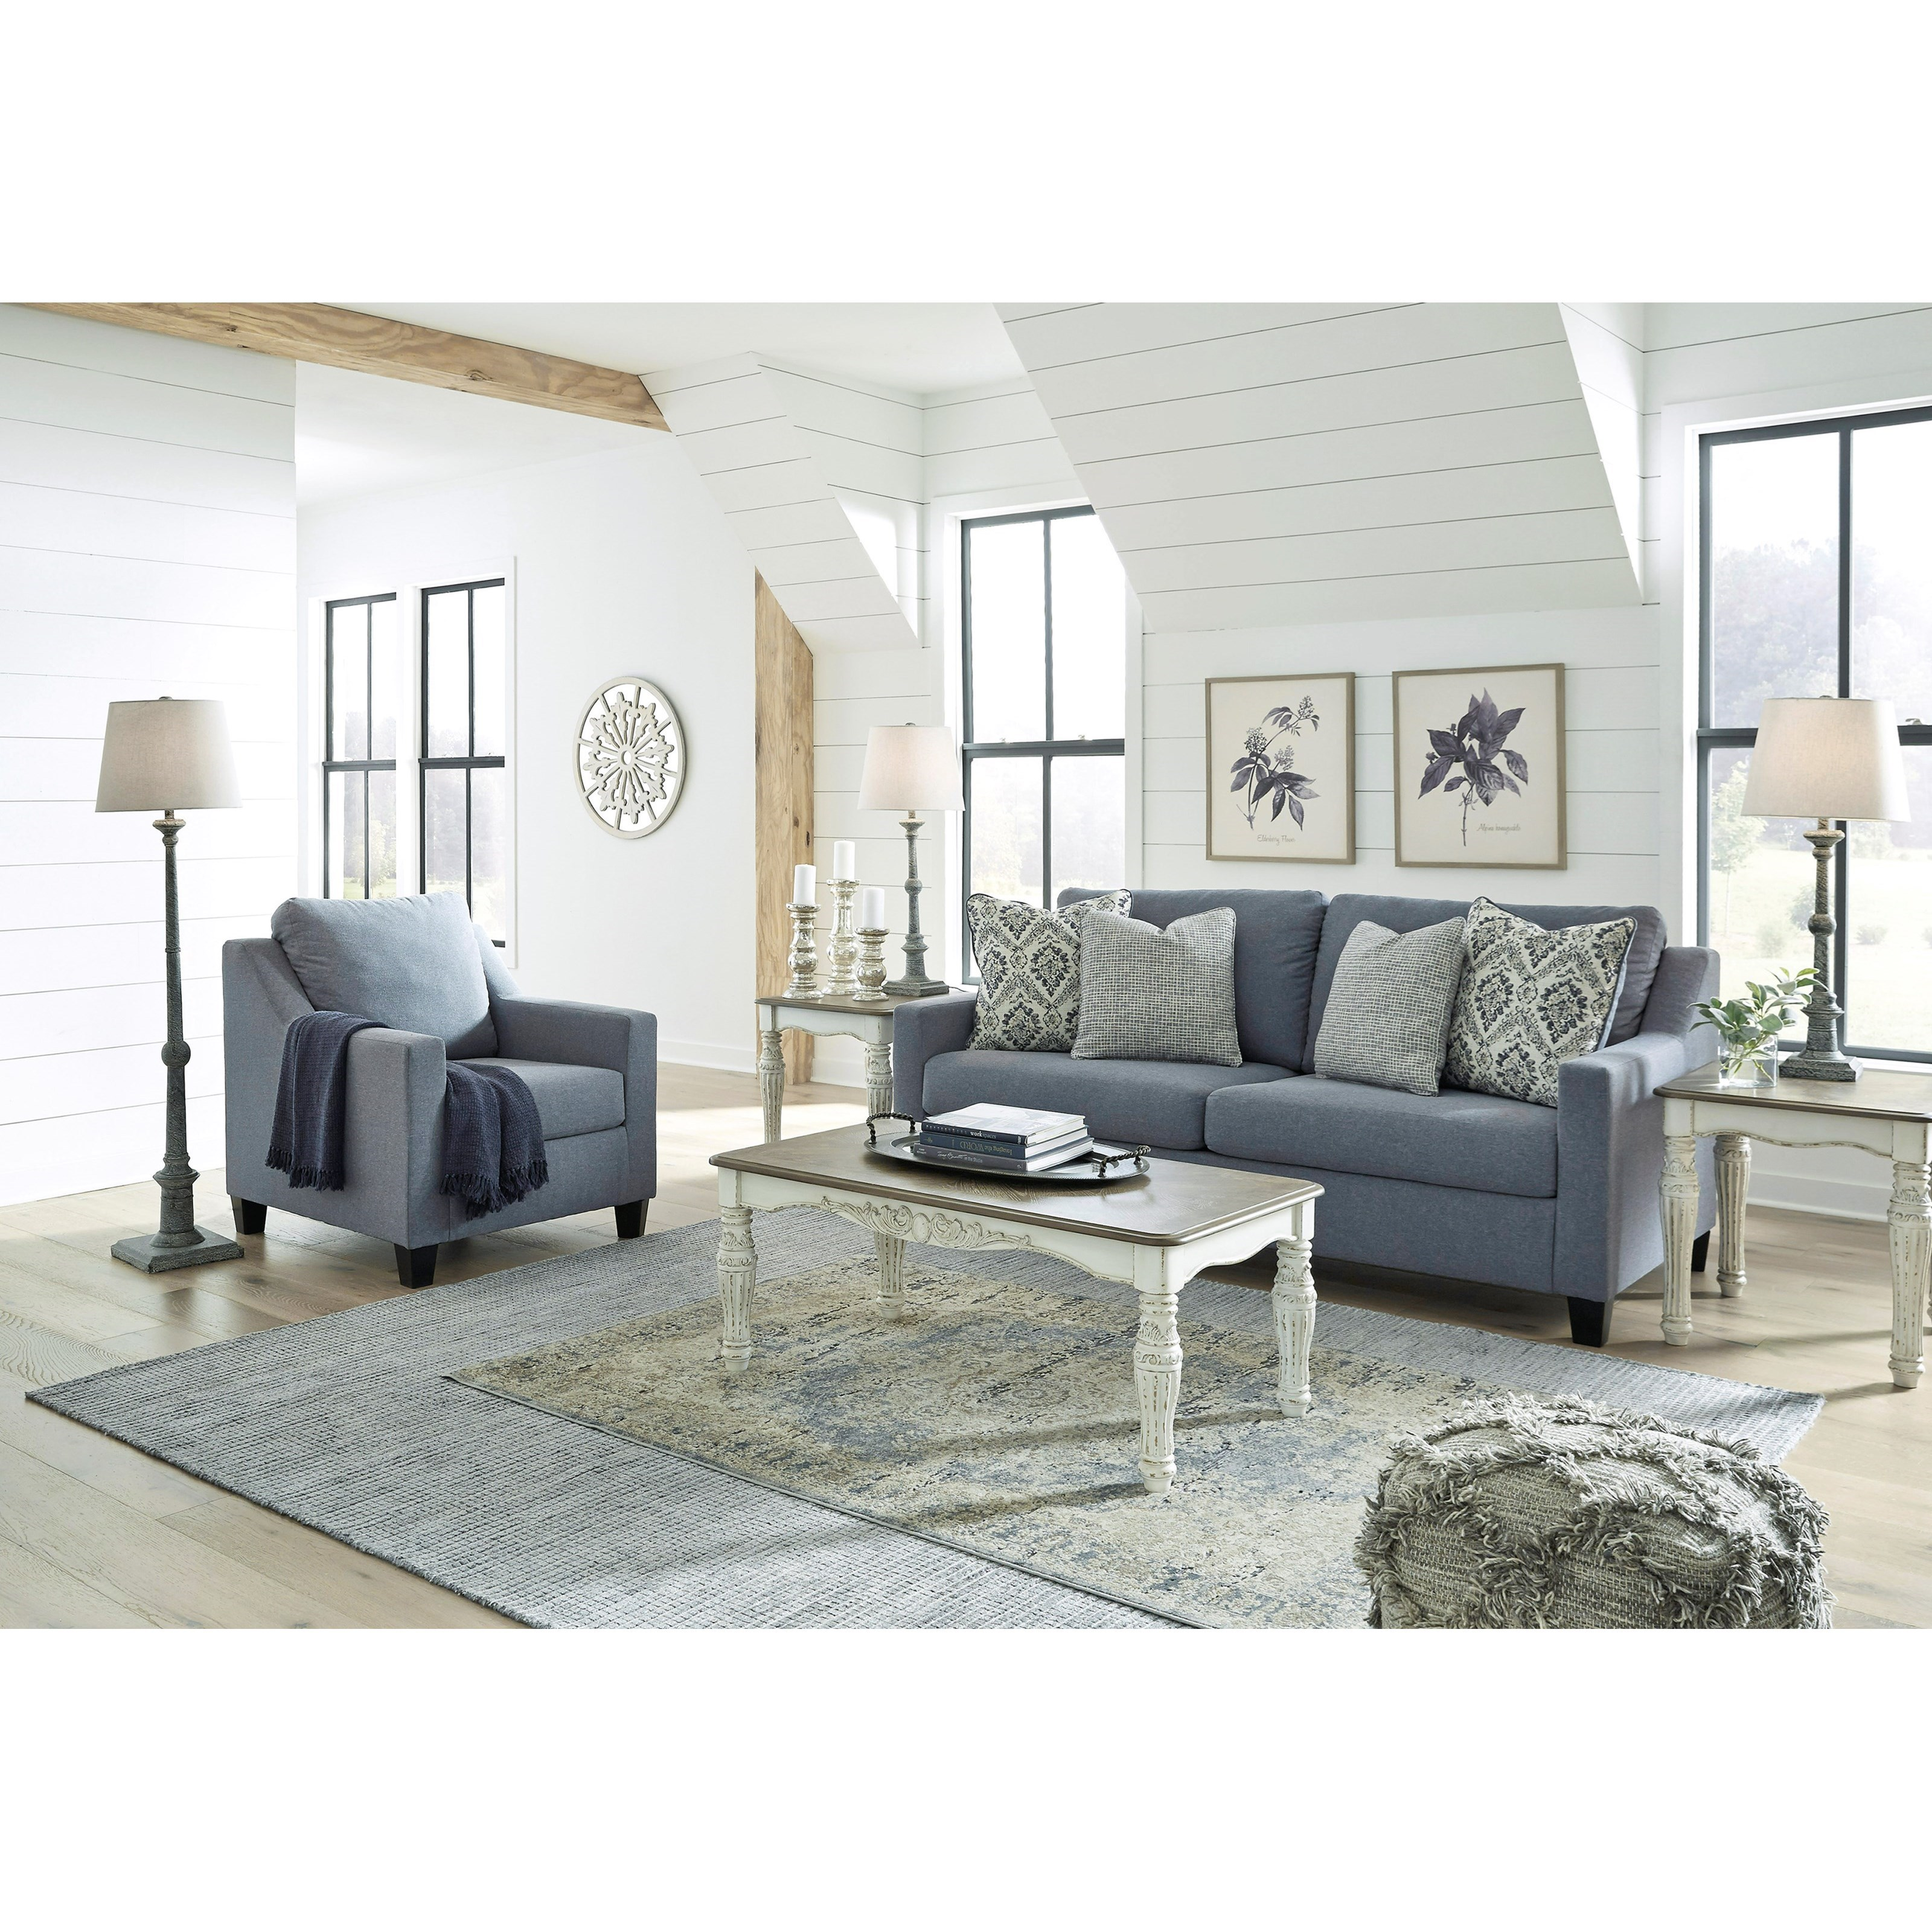 Lemly Living Room Group by Ashley at Godby Home Furnishings